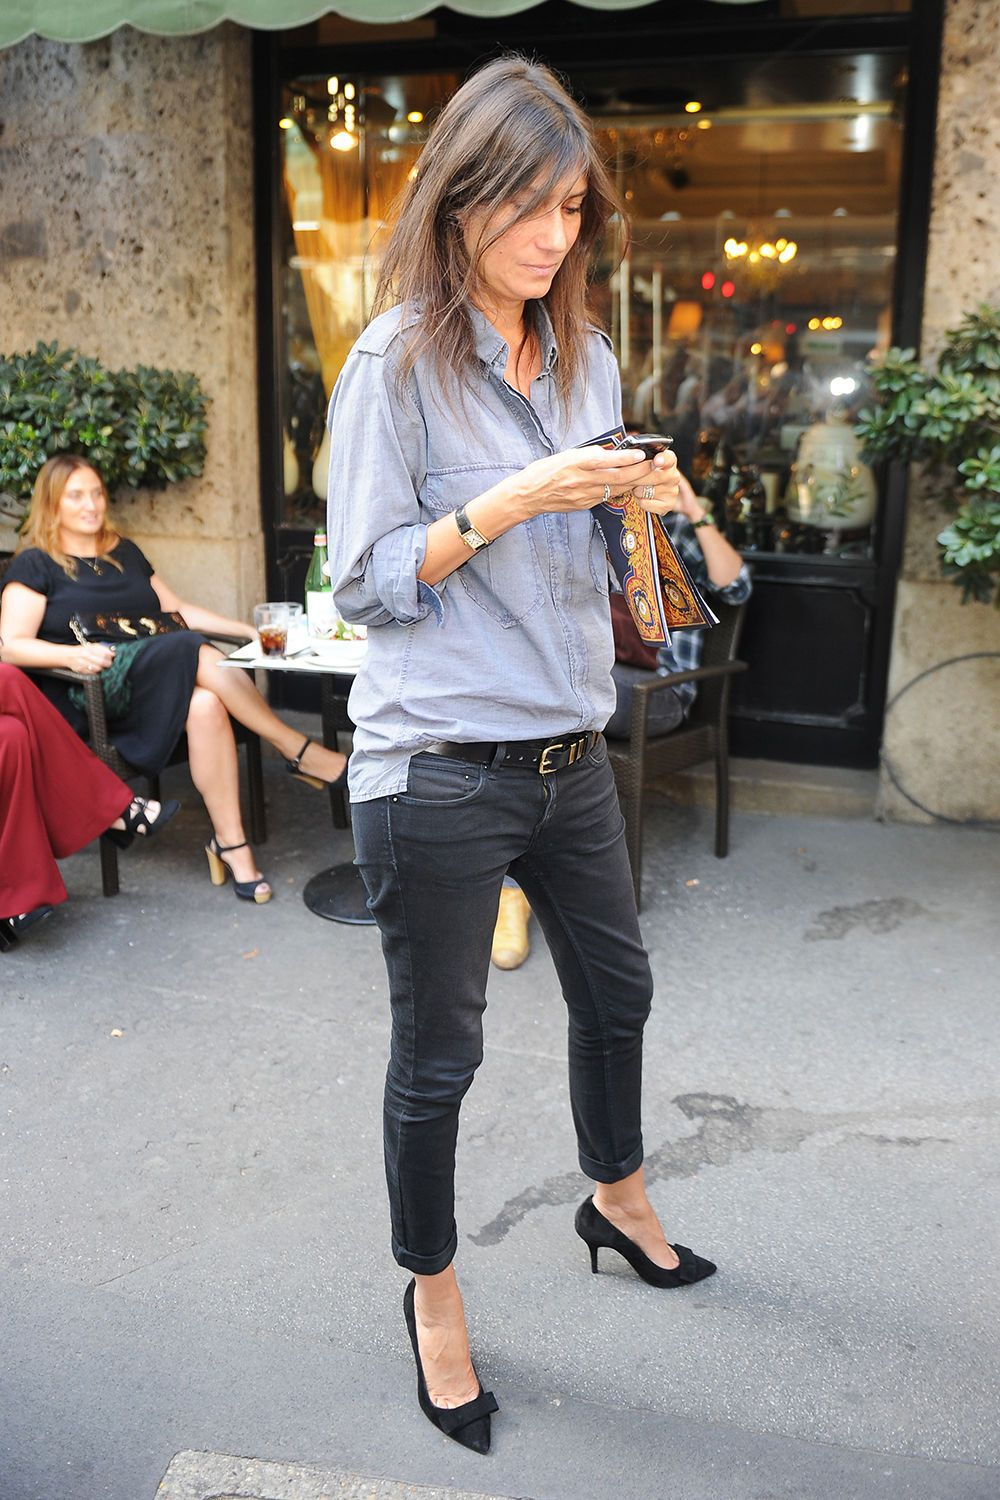 7/8 Jeans: The denim trend of the hour